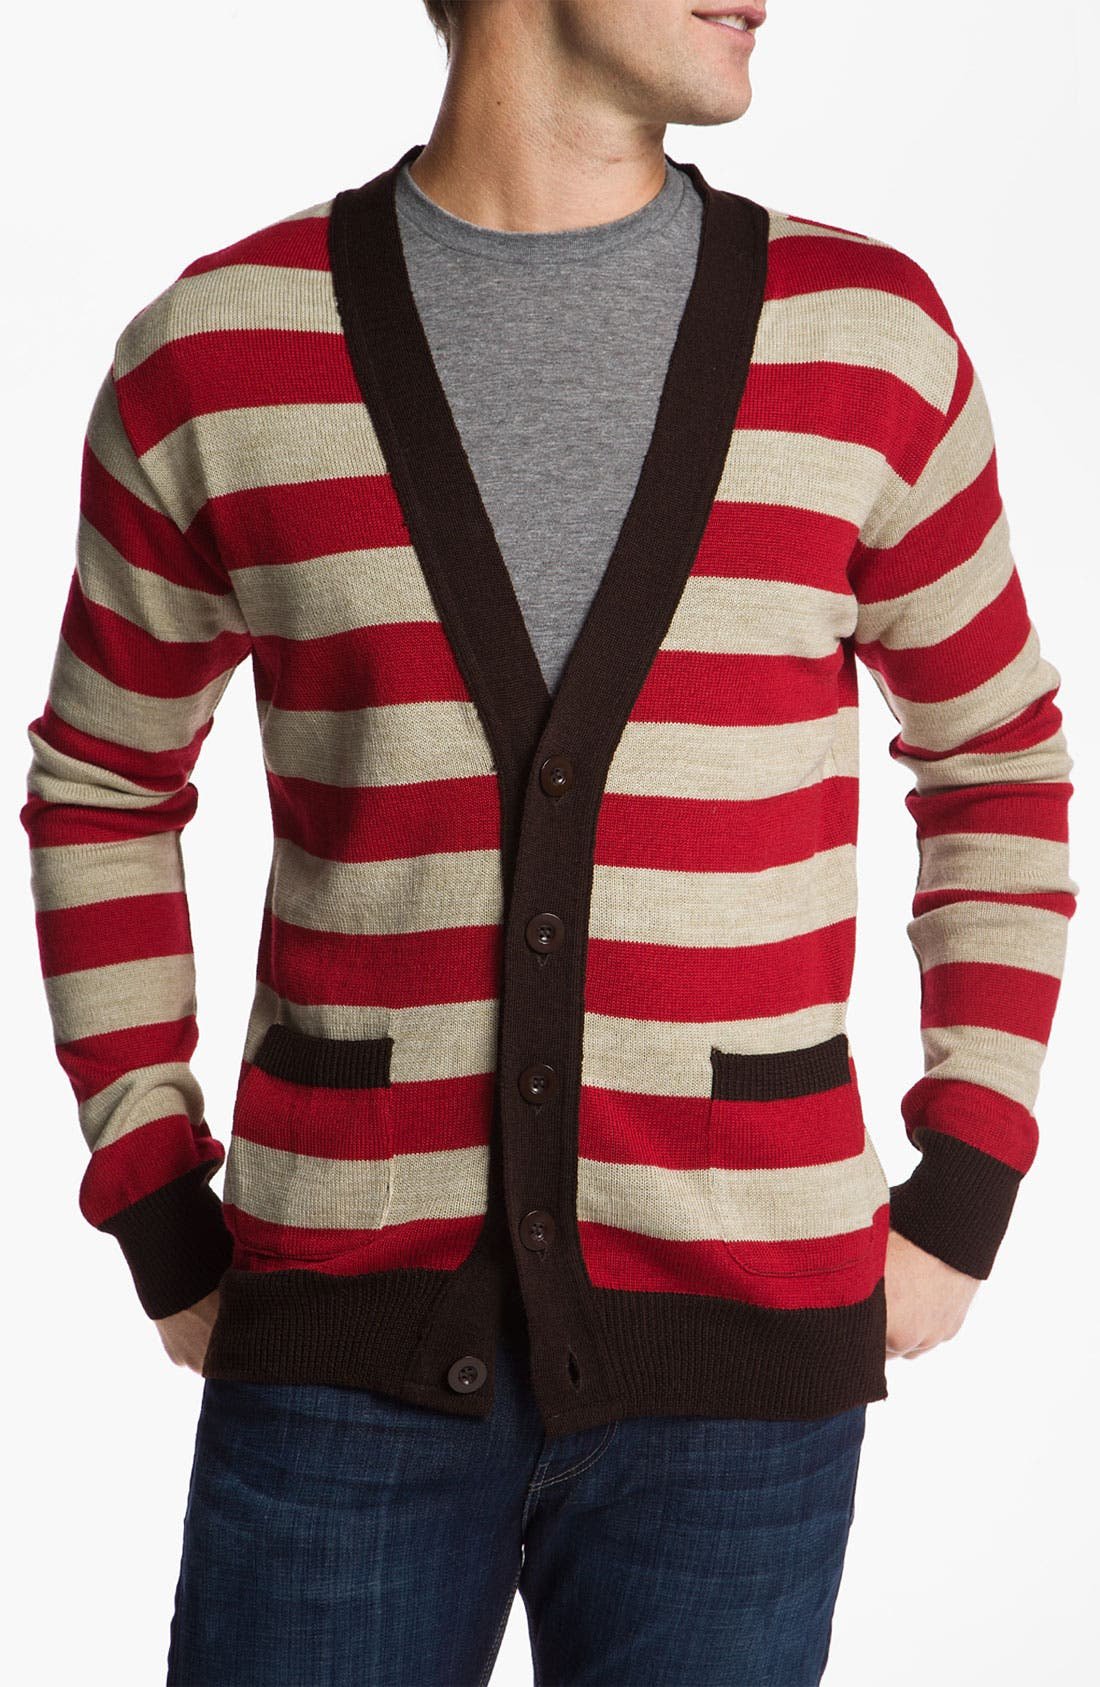 Alternate Image 1 Selected - Vanguard 'Norbert' Stripe Cardigan